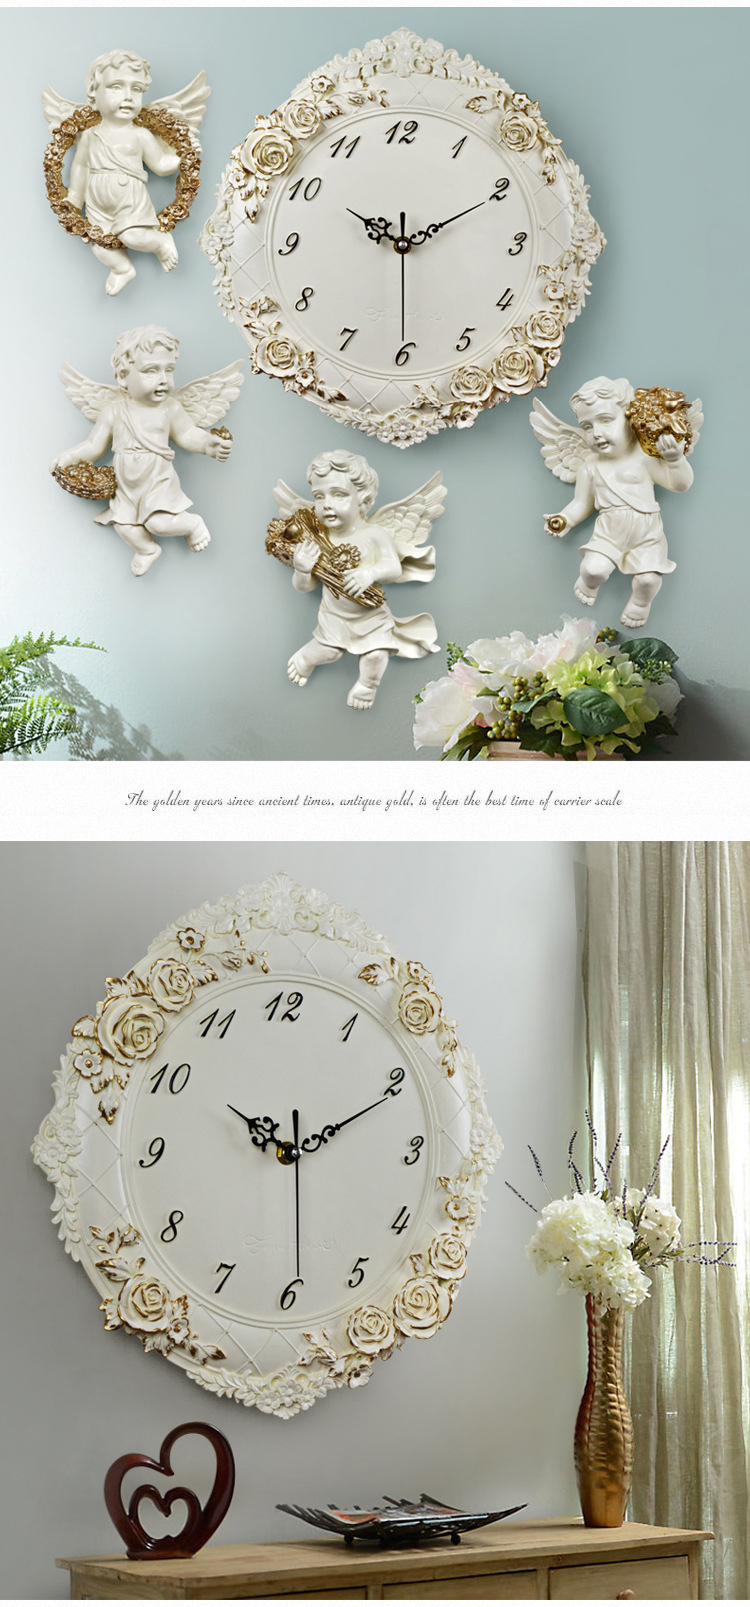 wall-clock-large-wall-clock-watch-vintage-wall-clock-home-decor-accessories-3d-statue-digital-clock-house-room-wedding-party-decoration (6)